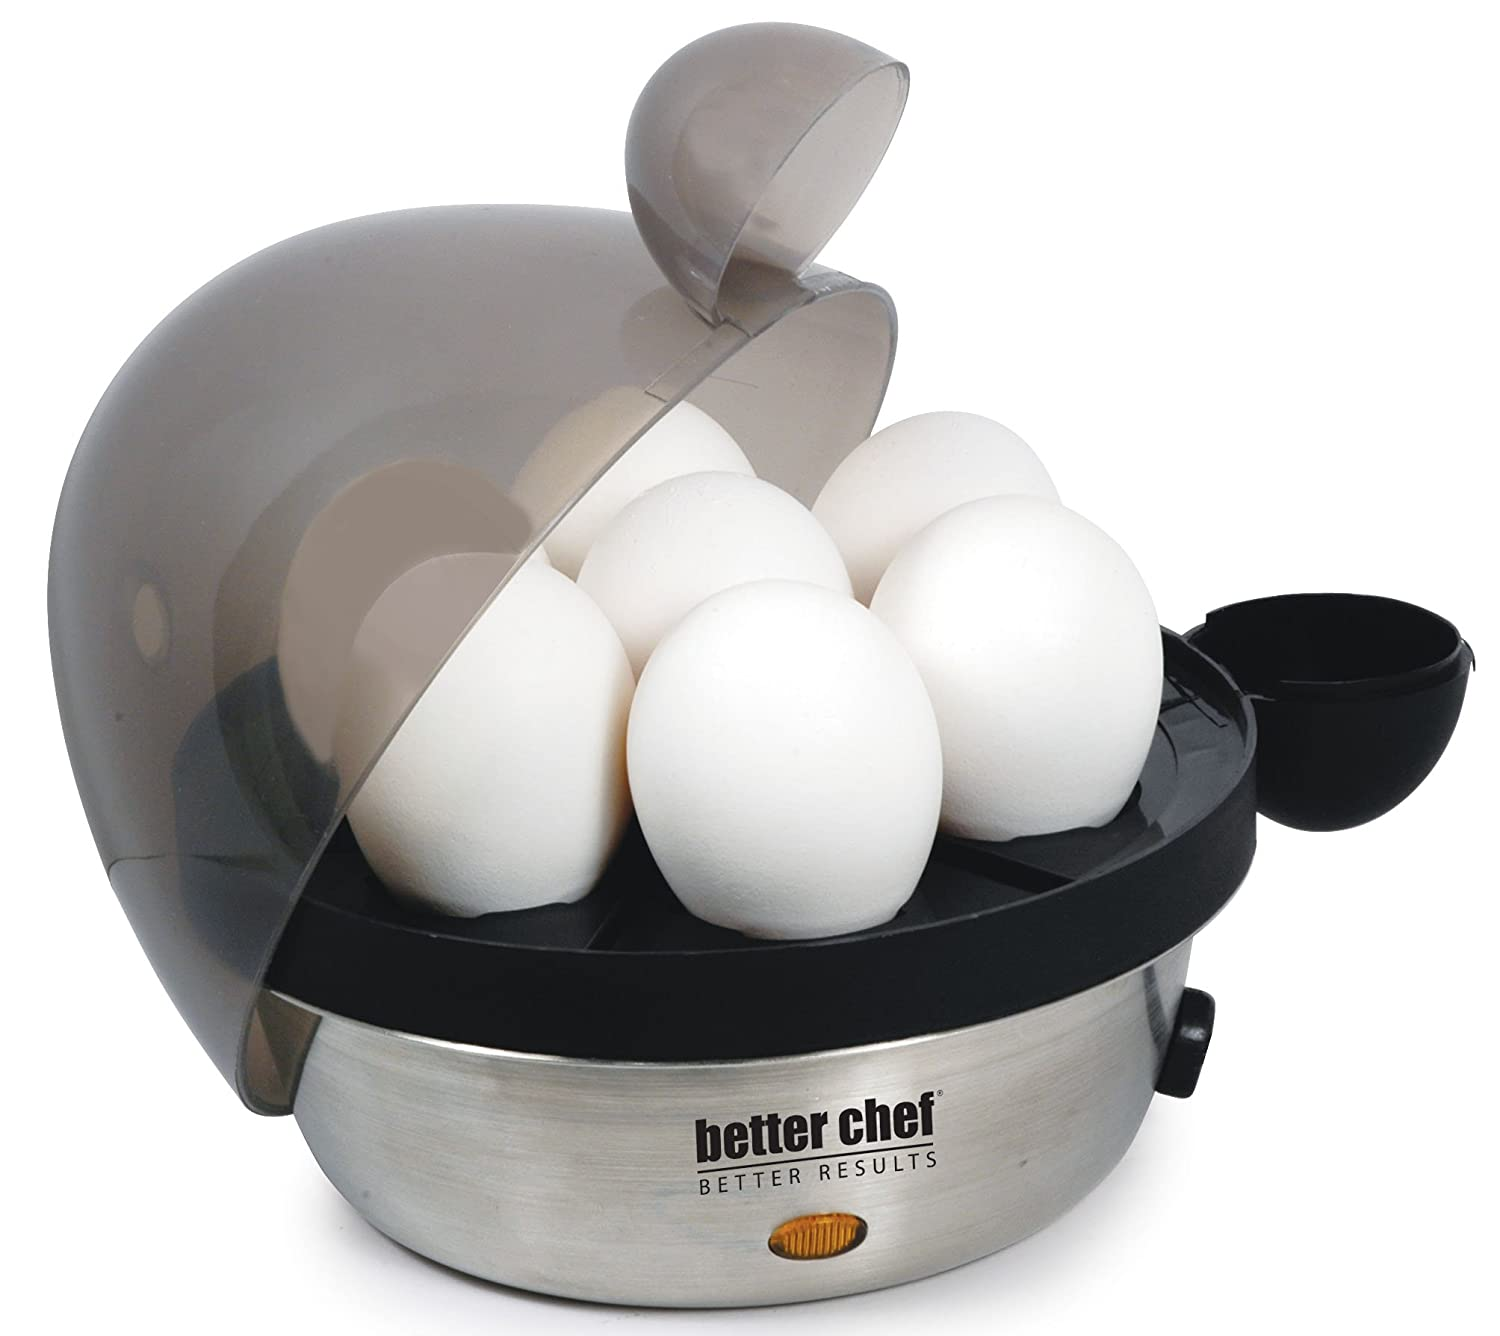 Better Chef IM-470S Stainless Steel Electric Egg Cooker | Boil up to 7 Eggs in a Matter of Minutes | Removable Cool Touch Tray | Durable Stainless Steel Base | See-Through Lid